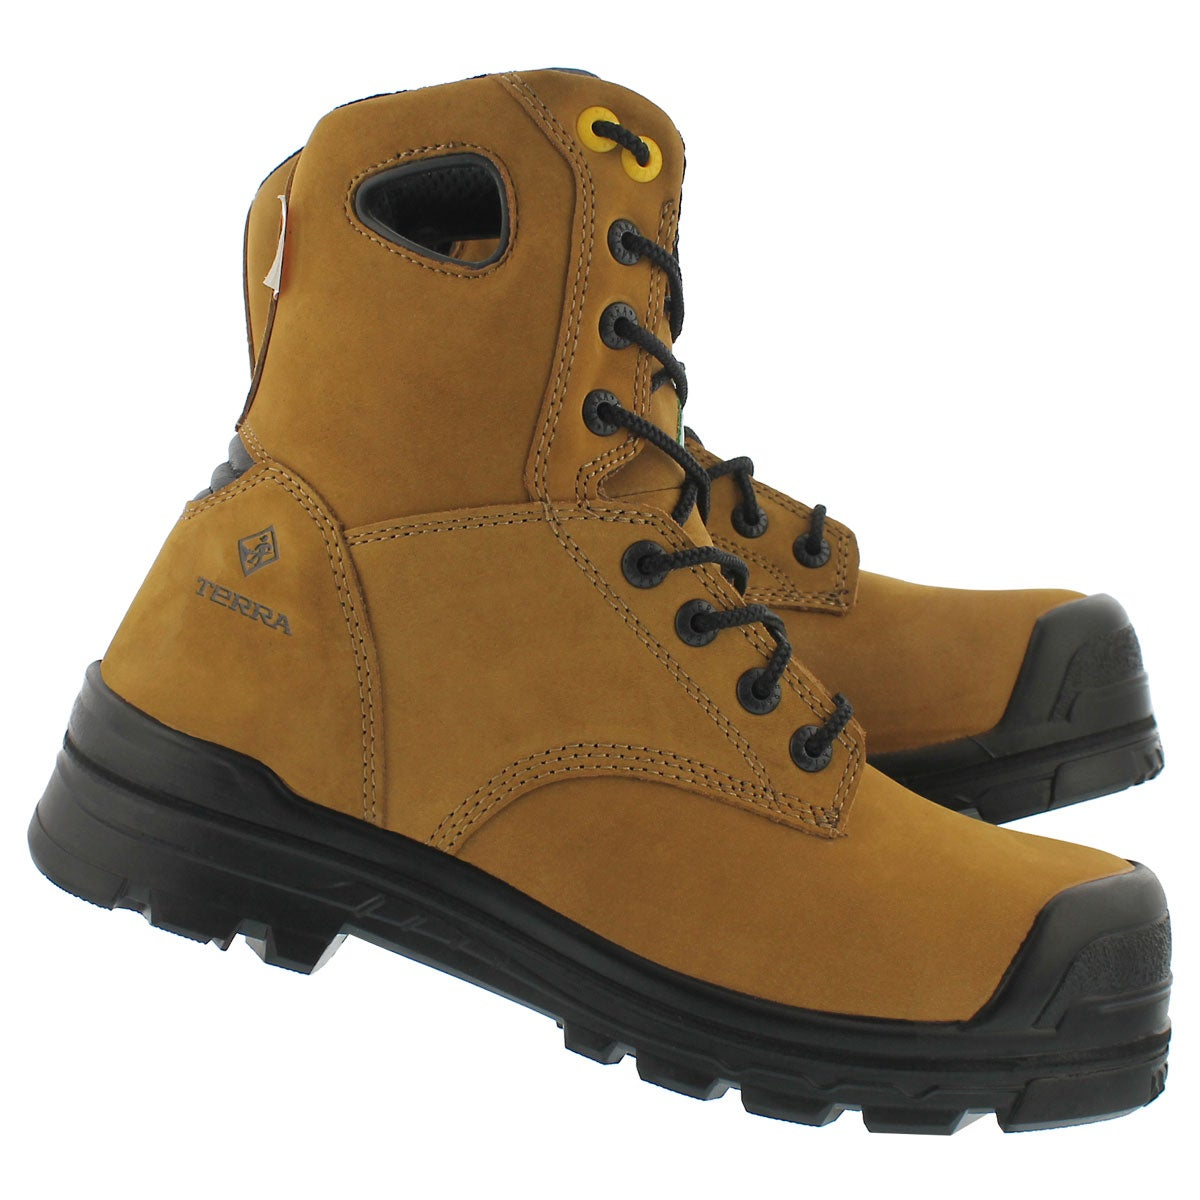 Mns Argo tan lace up wtpf CSA boot